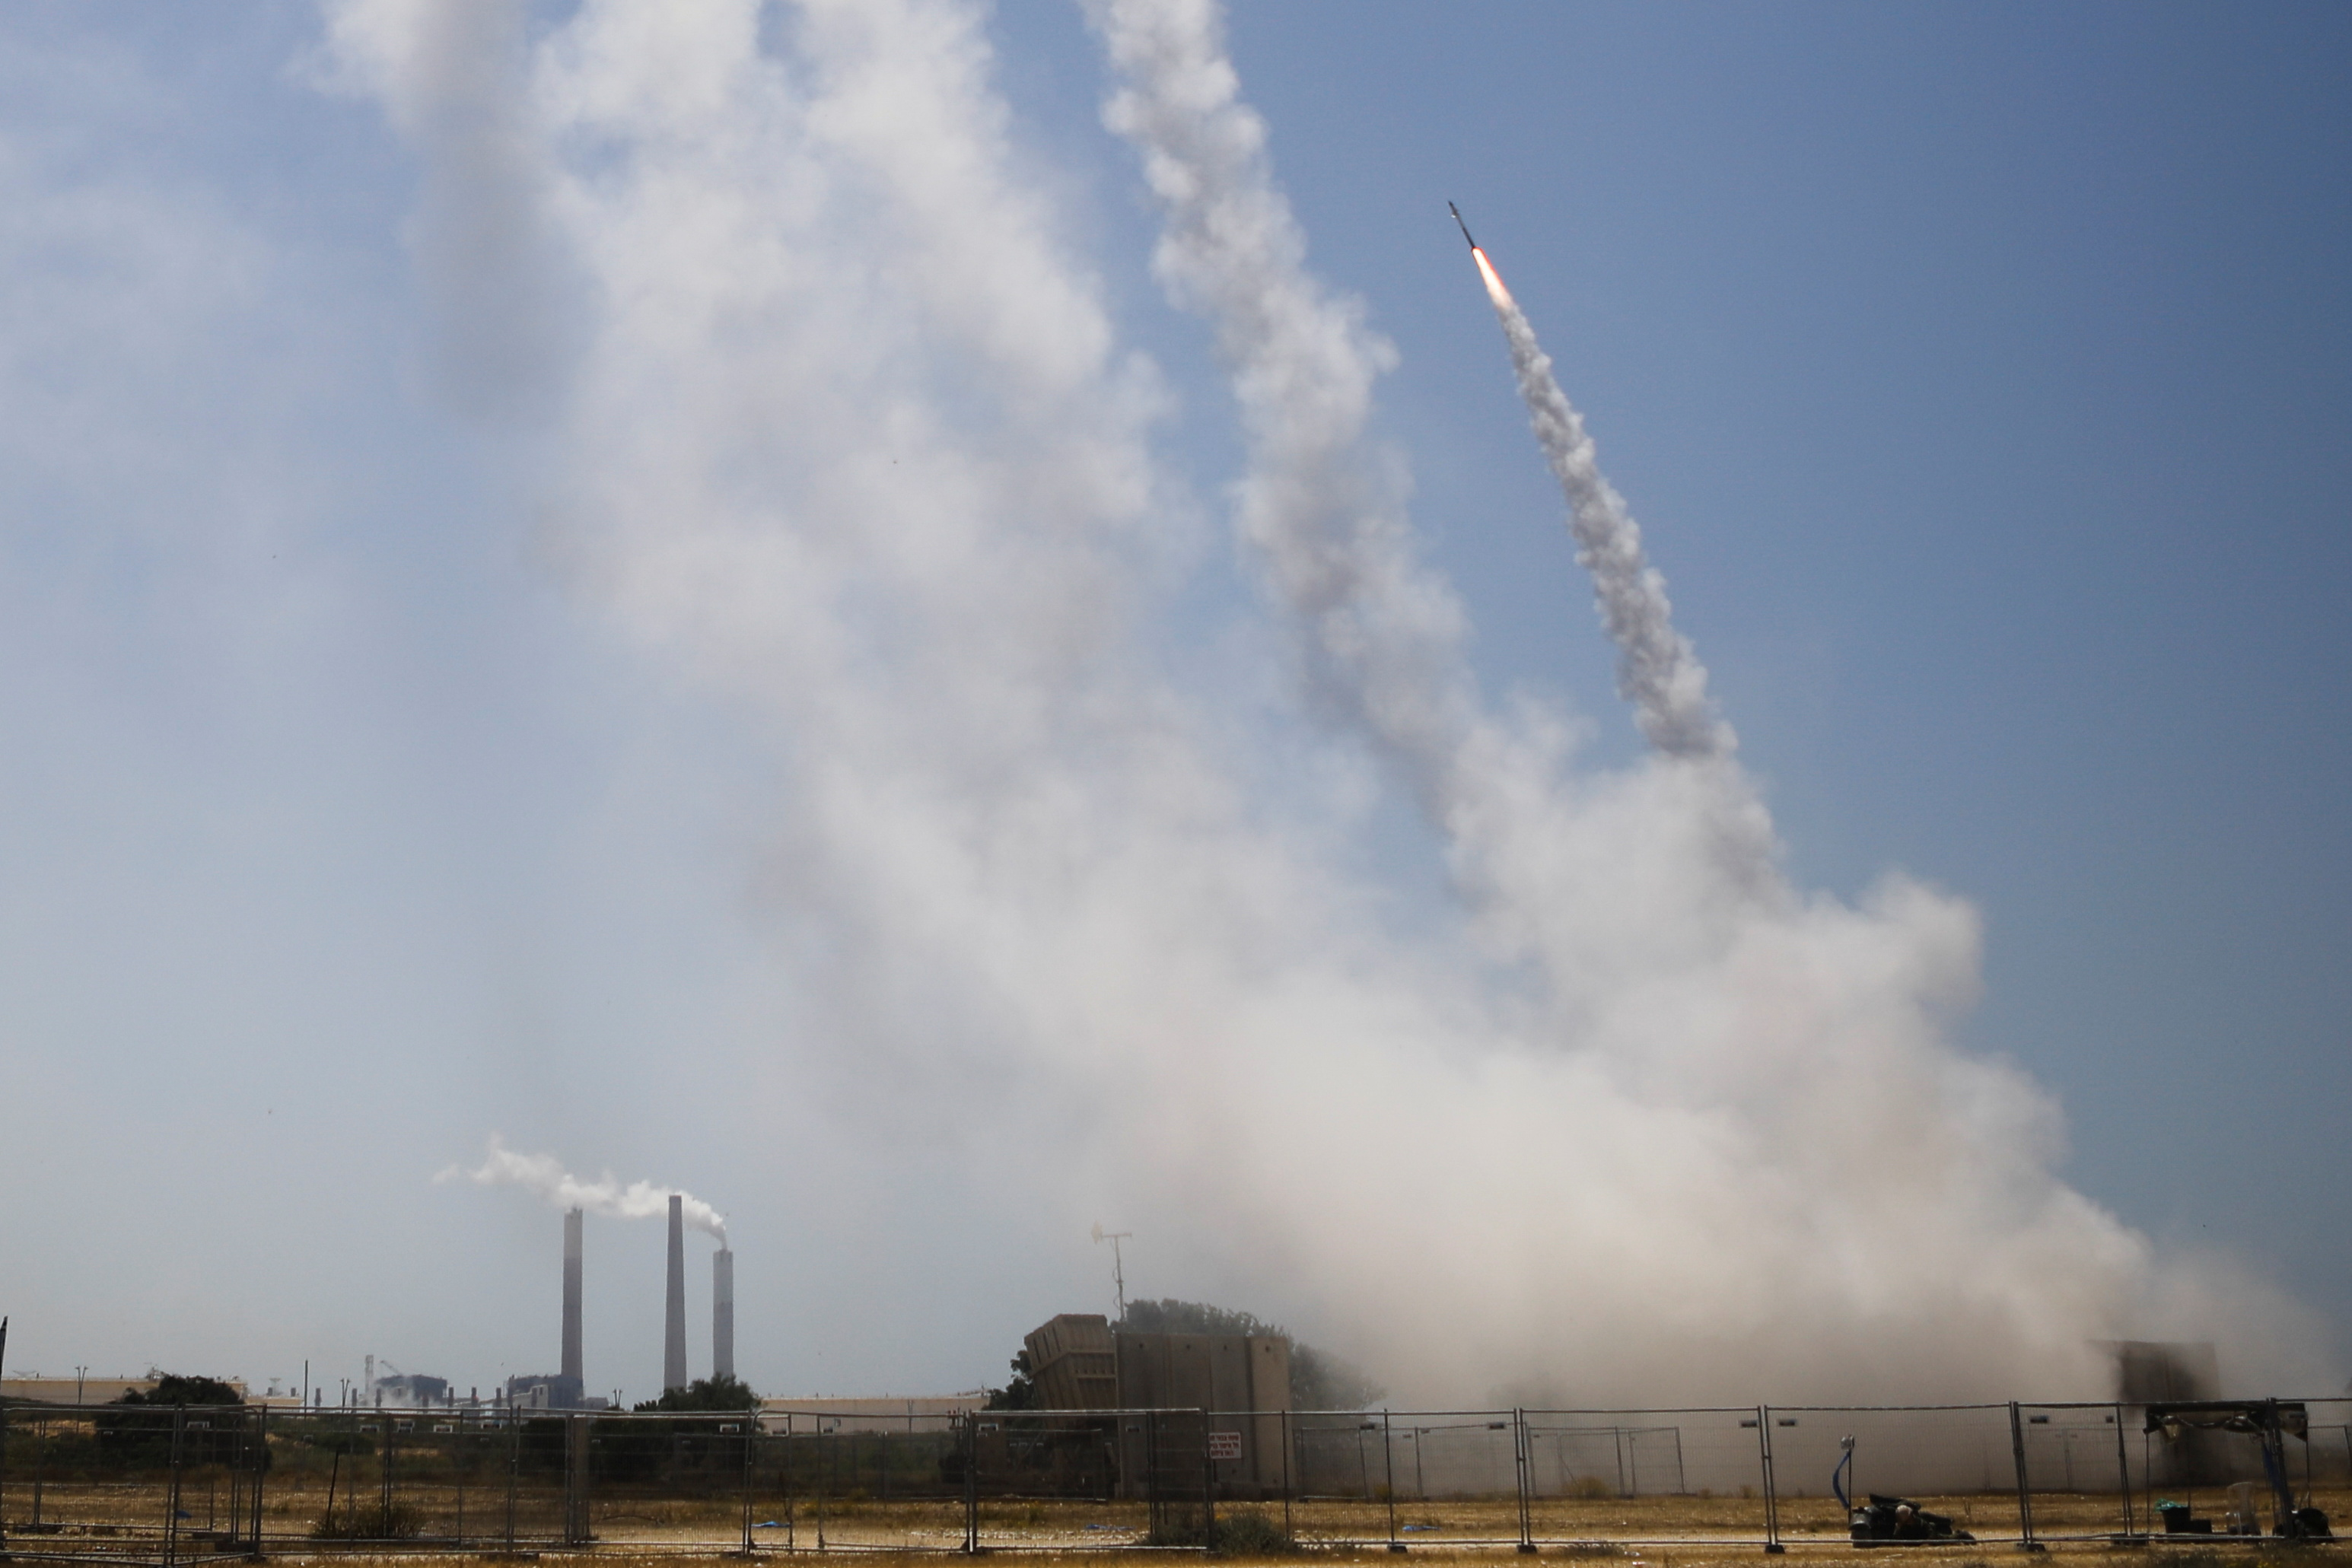 Israel's Iron Dome anti-missile system intercepts rockets launched from the Gaza Strip, as seen from Ashkelon, southern Israel May 11, 2021. REUTERS/Nir Elias